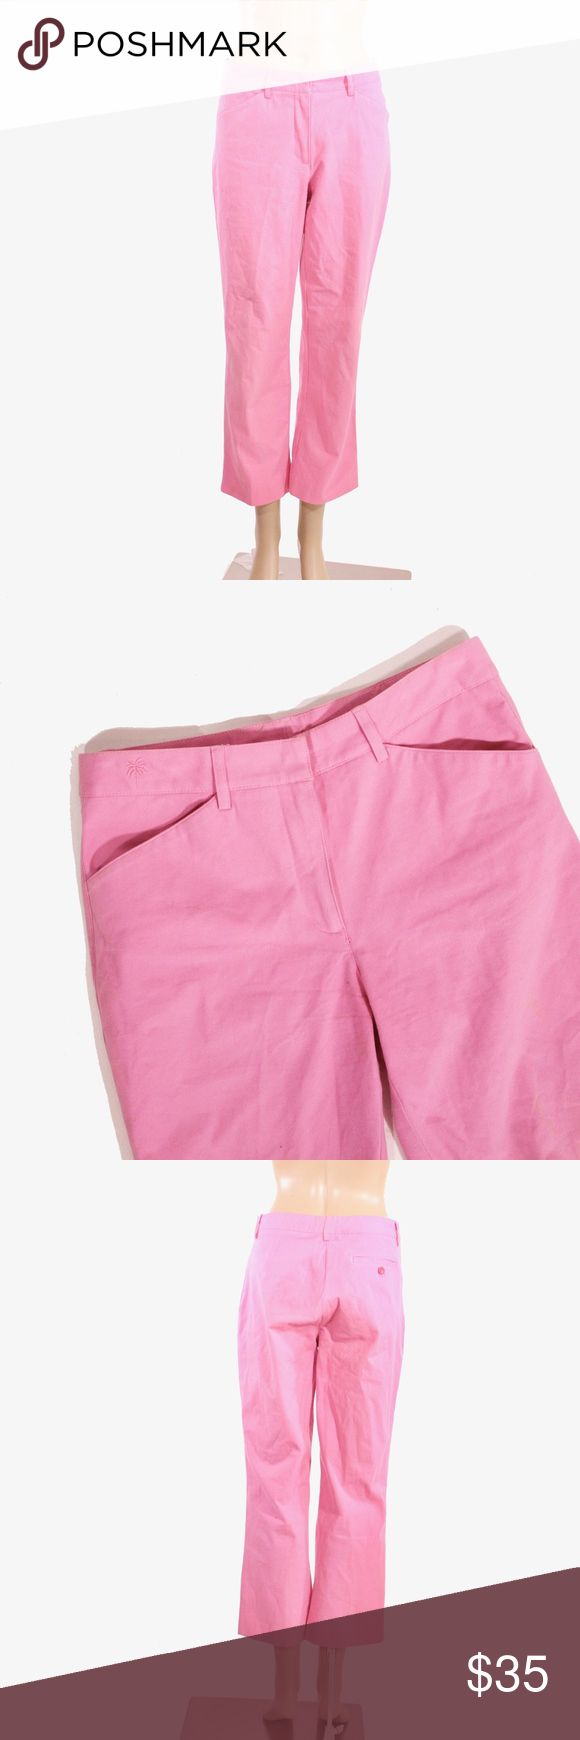 Lilly Pulitzer Cotton Pink Ankle Length Pants Lilly Pulitzer pink ankle length pants with zipper and clasp closure and two front pockets.  Fits true to size.  Shown on a size 4/6 mannequin.  In gently used condition, no flaws.  Measurements available upon request.  All orders shipped same or next business day! Lilly Pulitzer Pants Ankle & Cropped